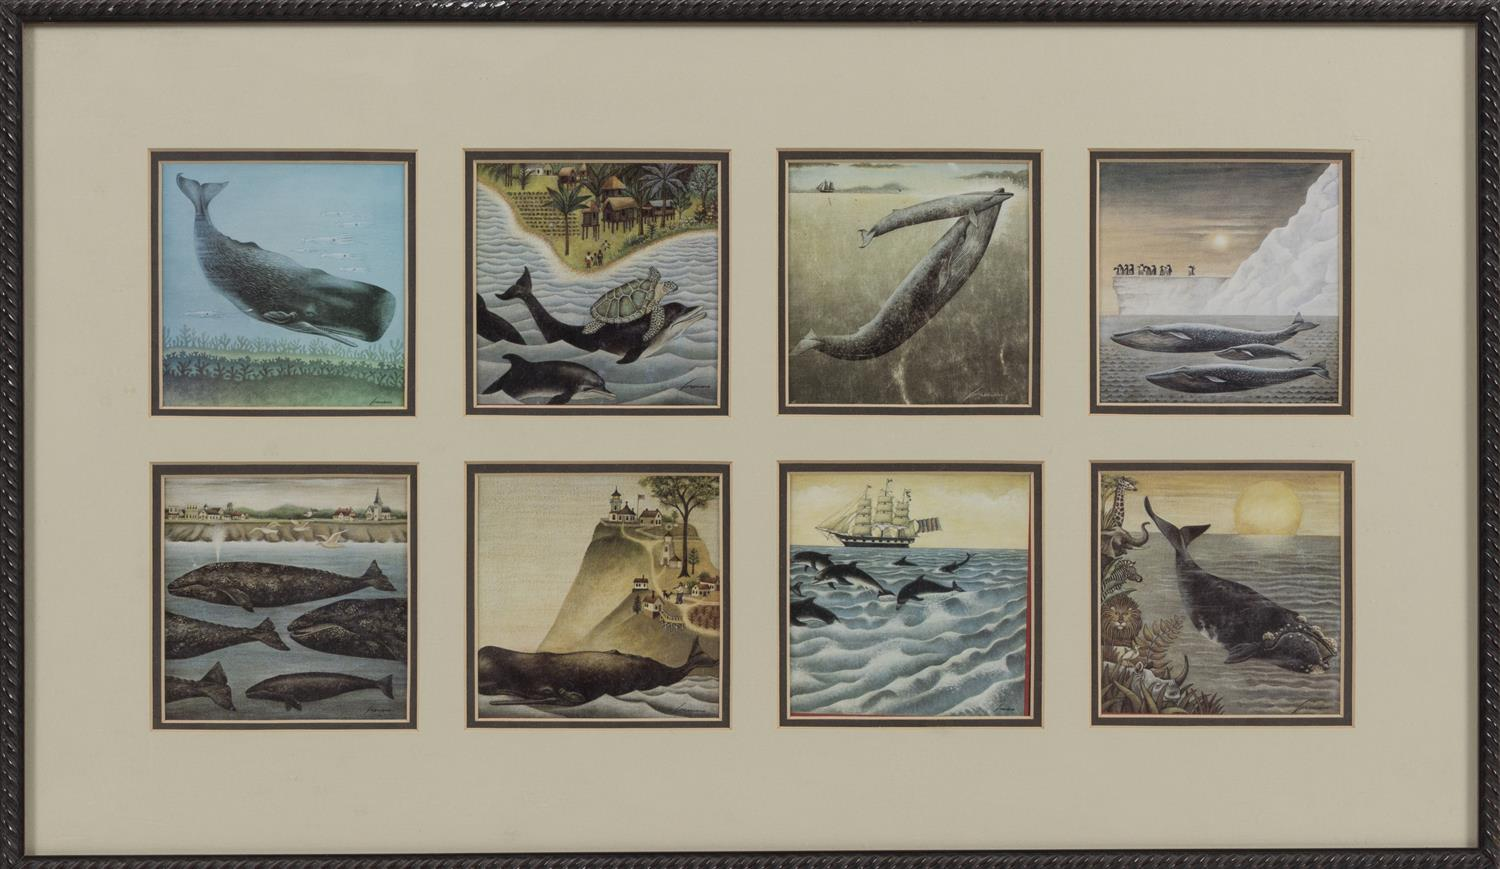 """EIGHT WHALE-THEMED PRINTS Housed together in a common frame. Each print 4.25"""" x 4.25"""" sight. Framed 15"""" x 26""""."""